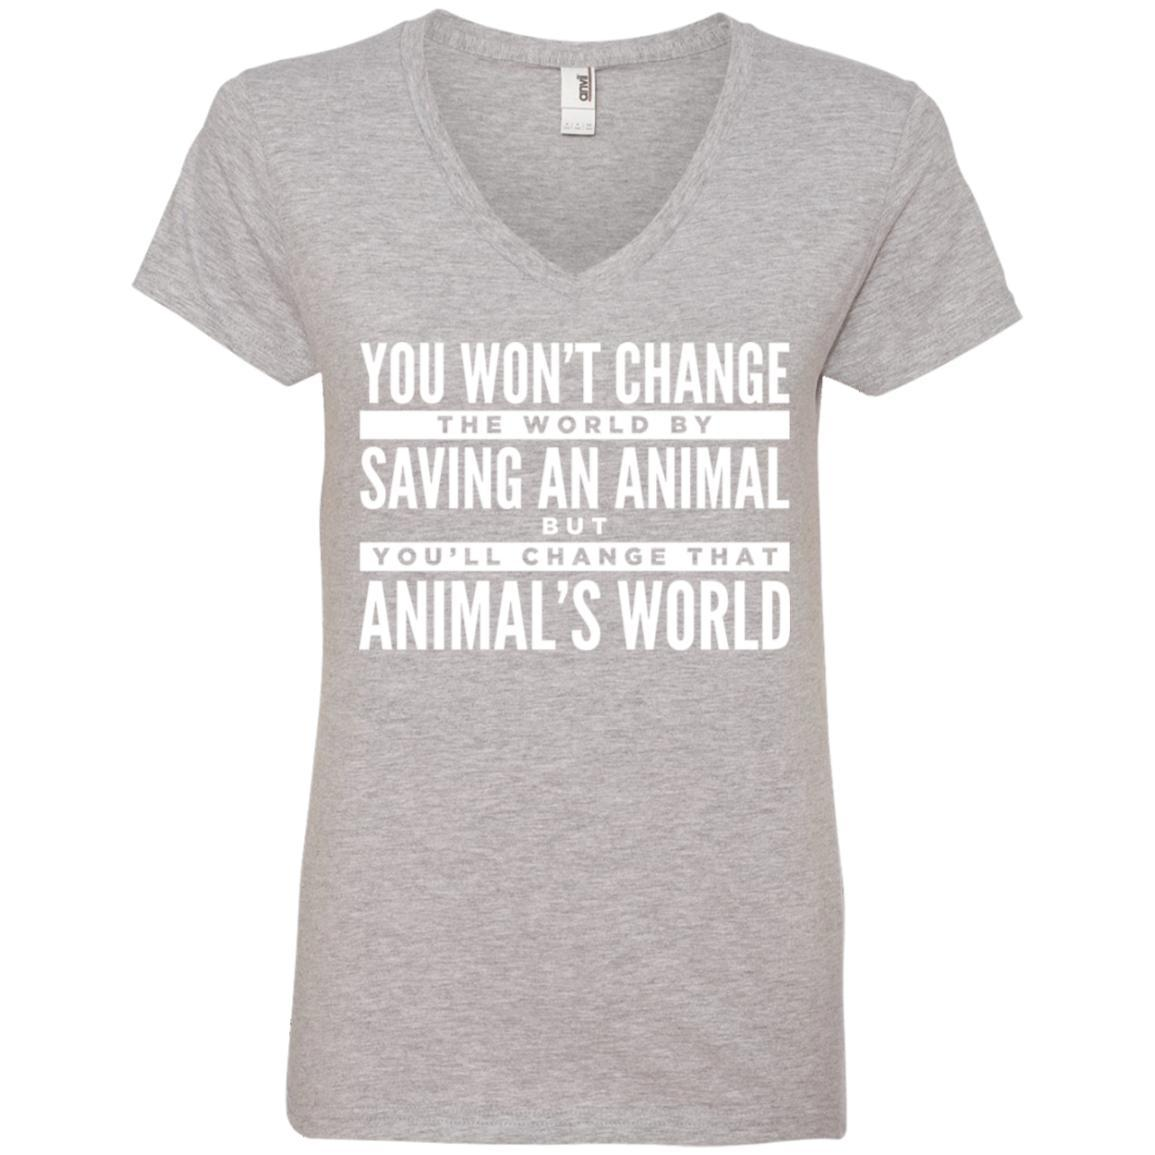 You Won't Change The World By Saving An Animal, But You Will Change That Animal's World V-Neck T-Shirt For Women - Ohmyglad